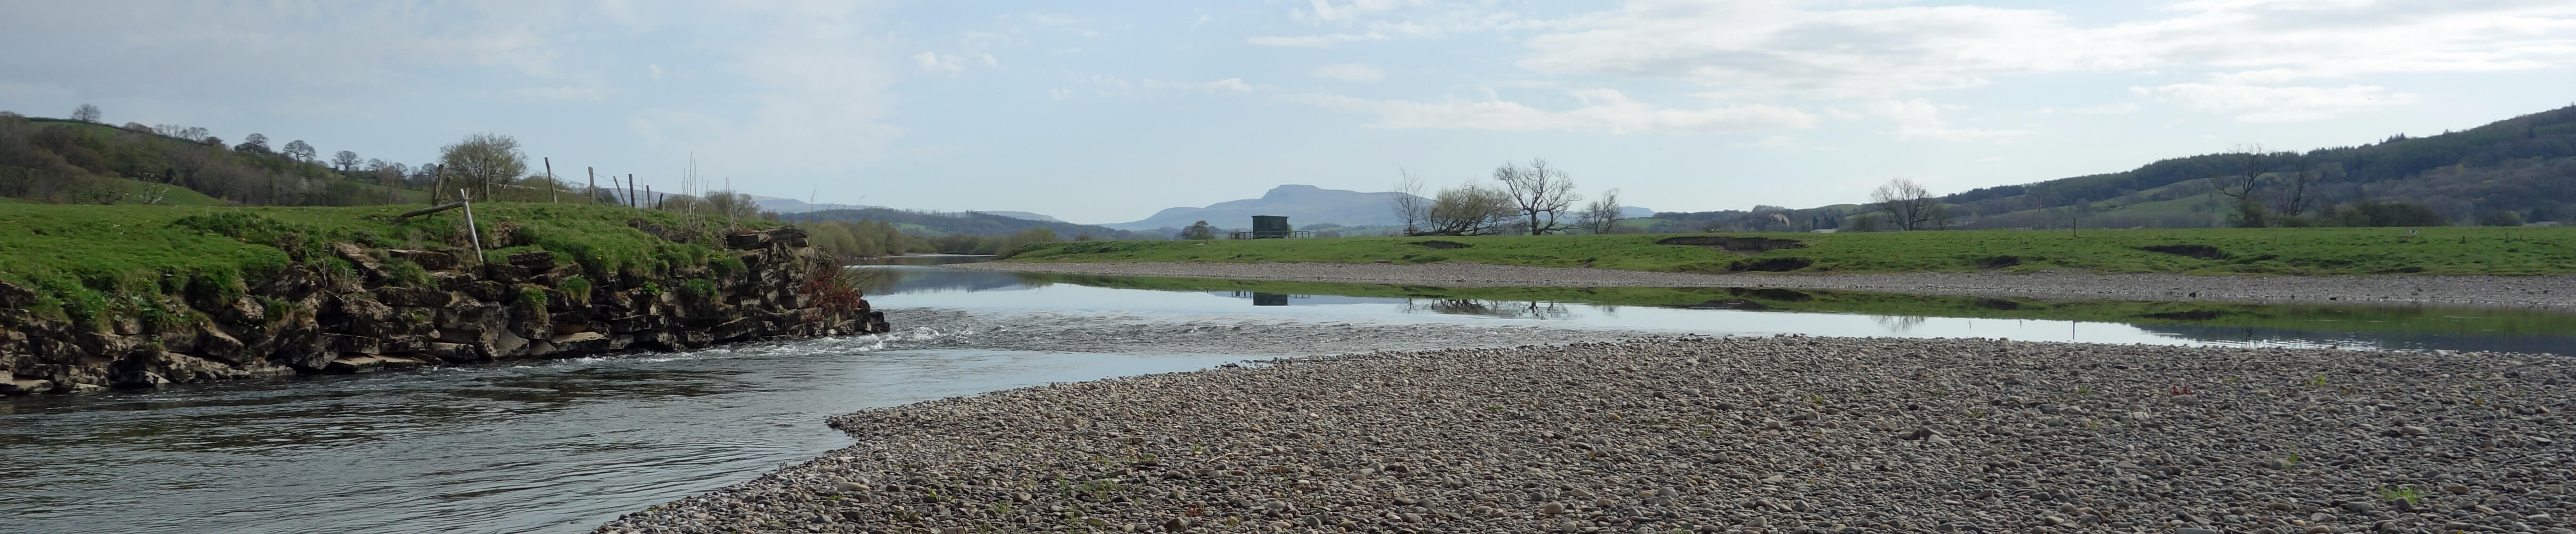 lune ingleborough